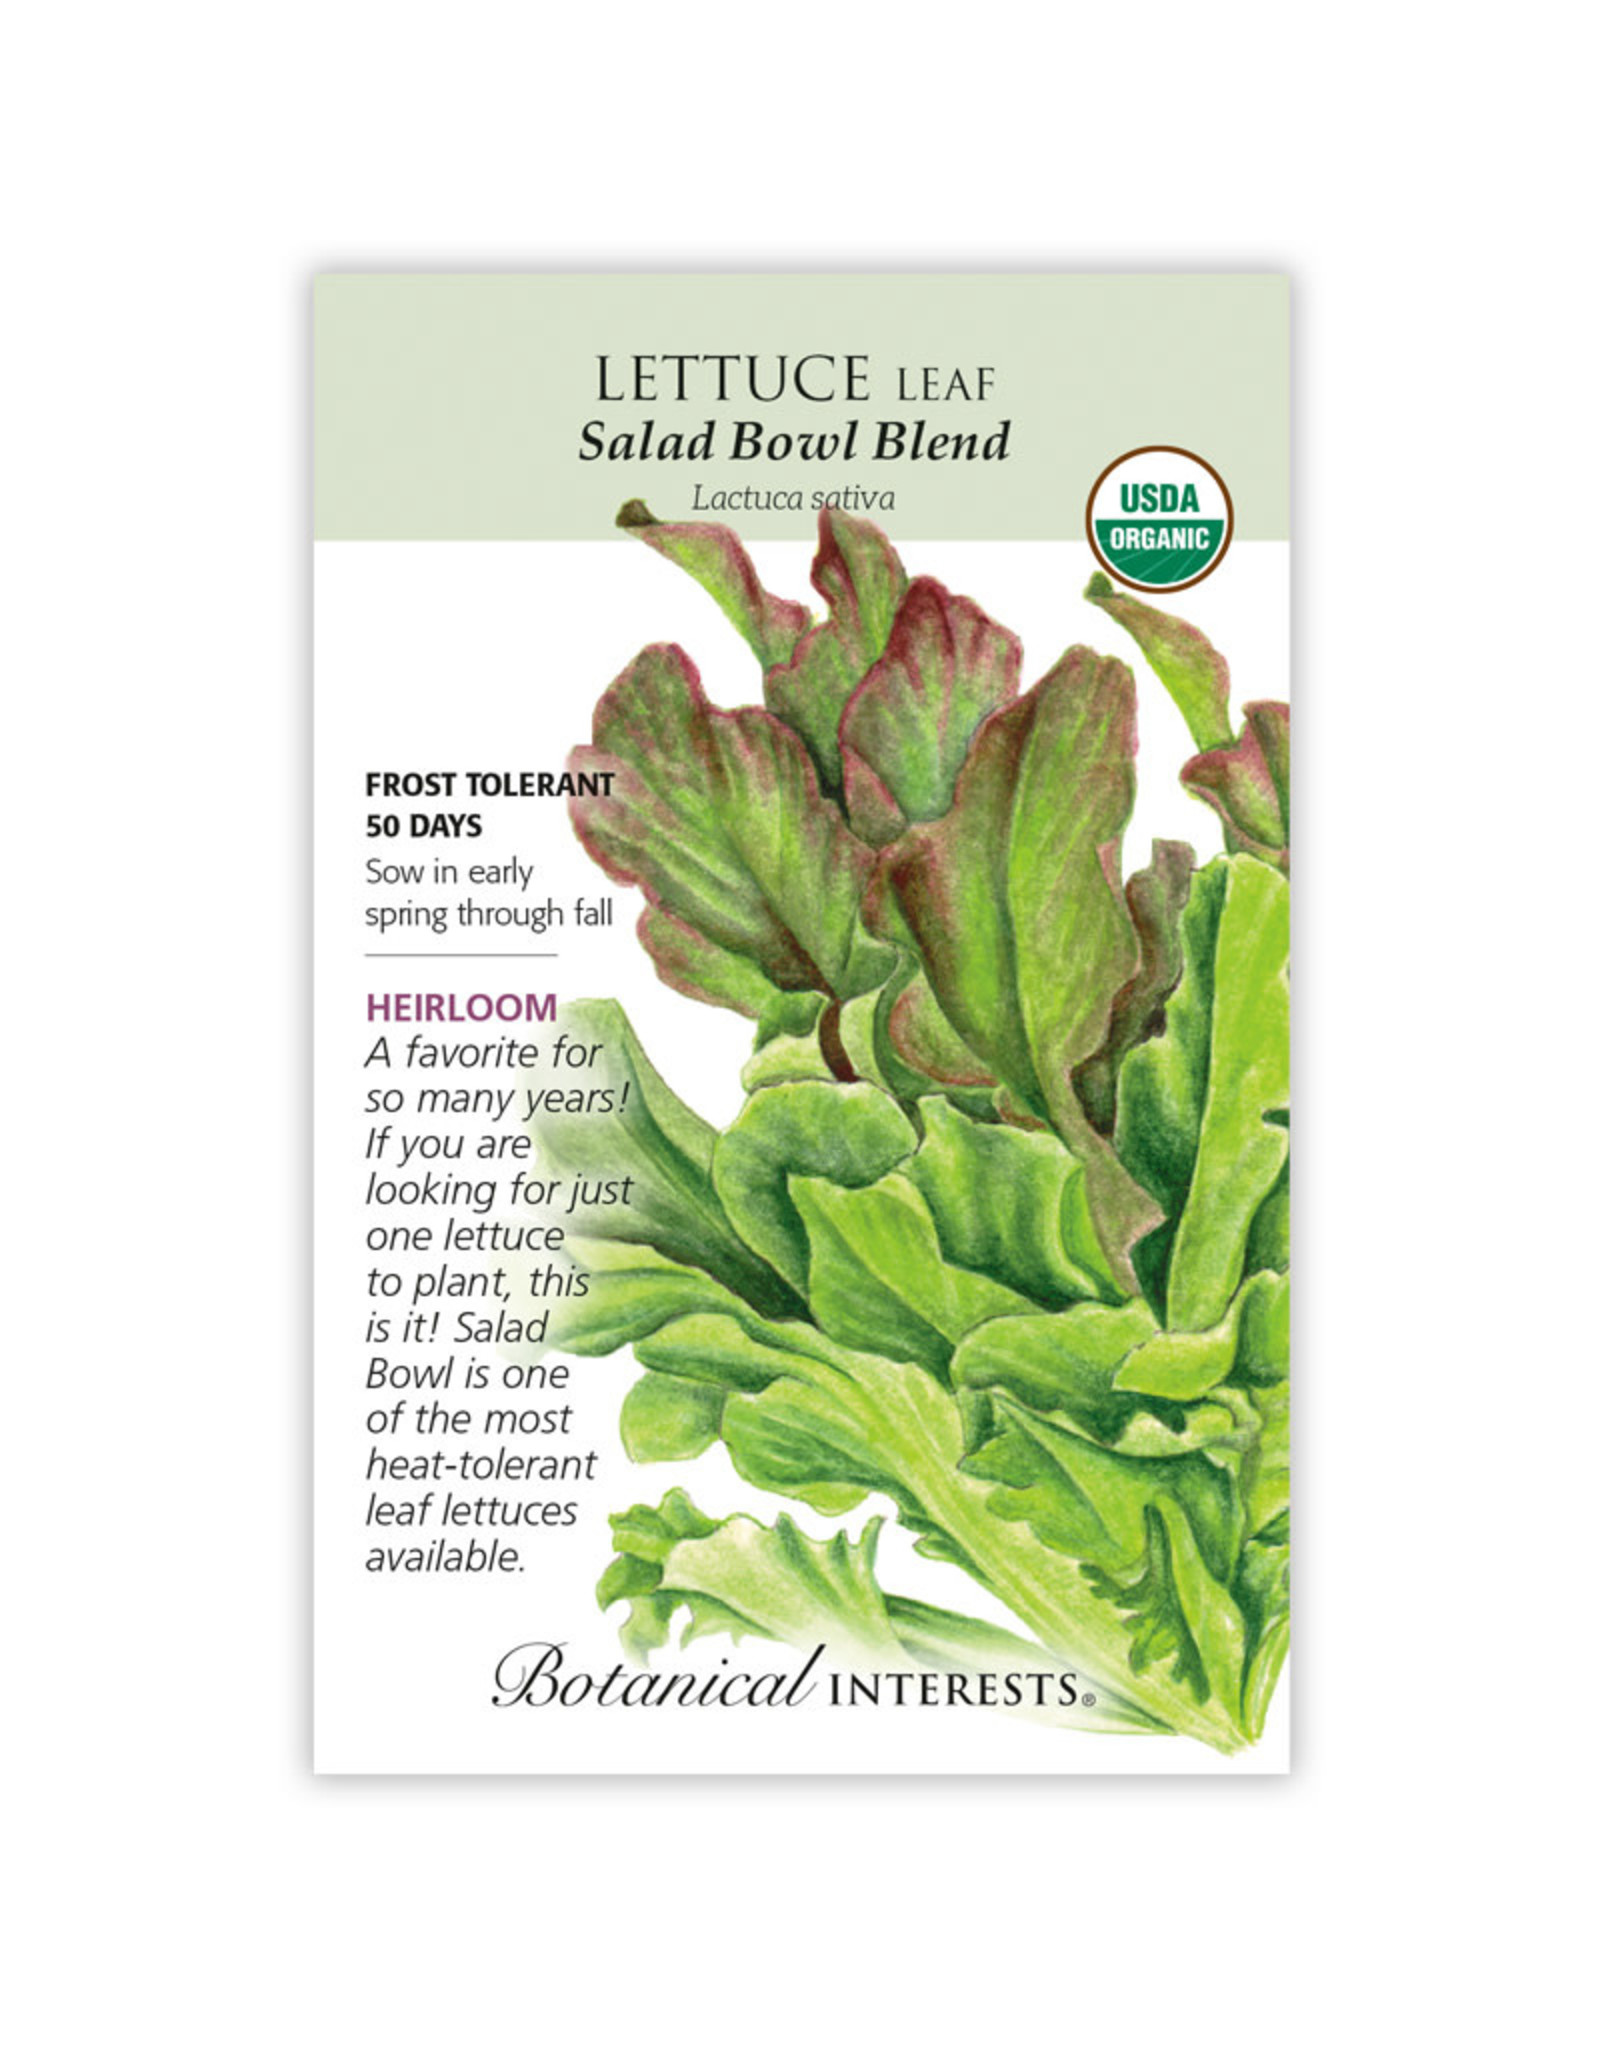 Seeds - Lettuce Leaf Salad Bowl Blend Organic, Large